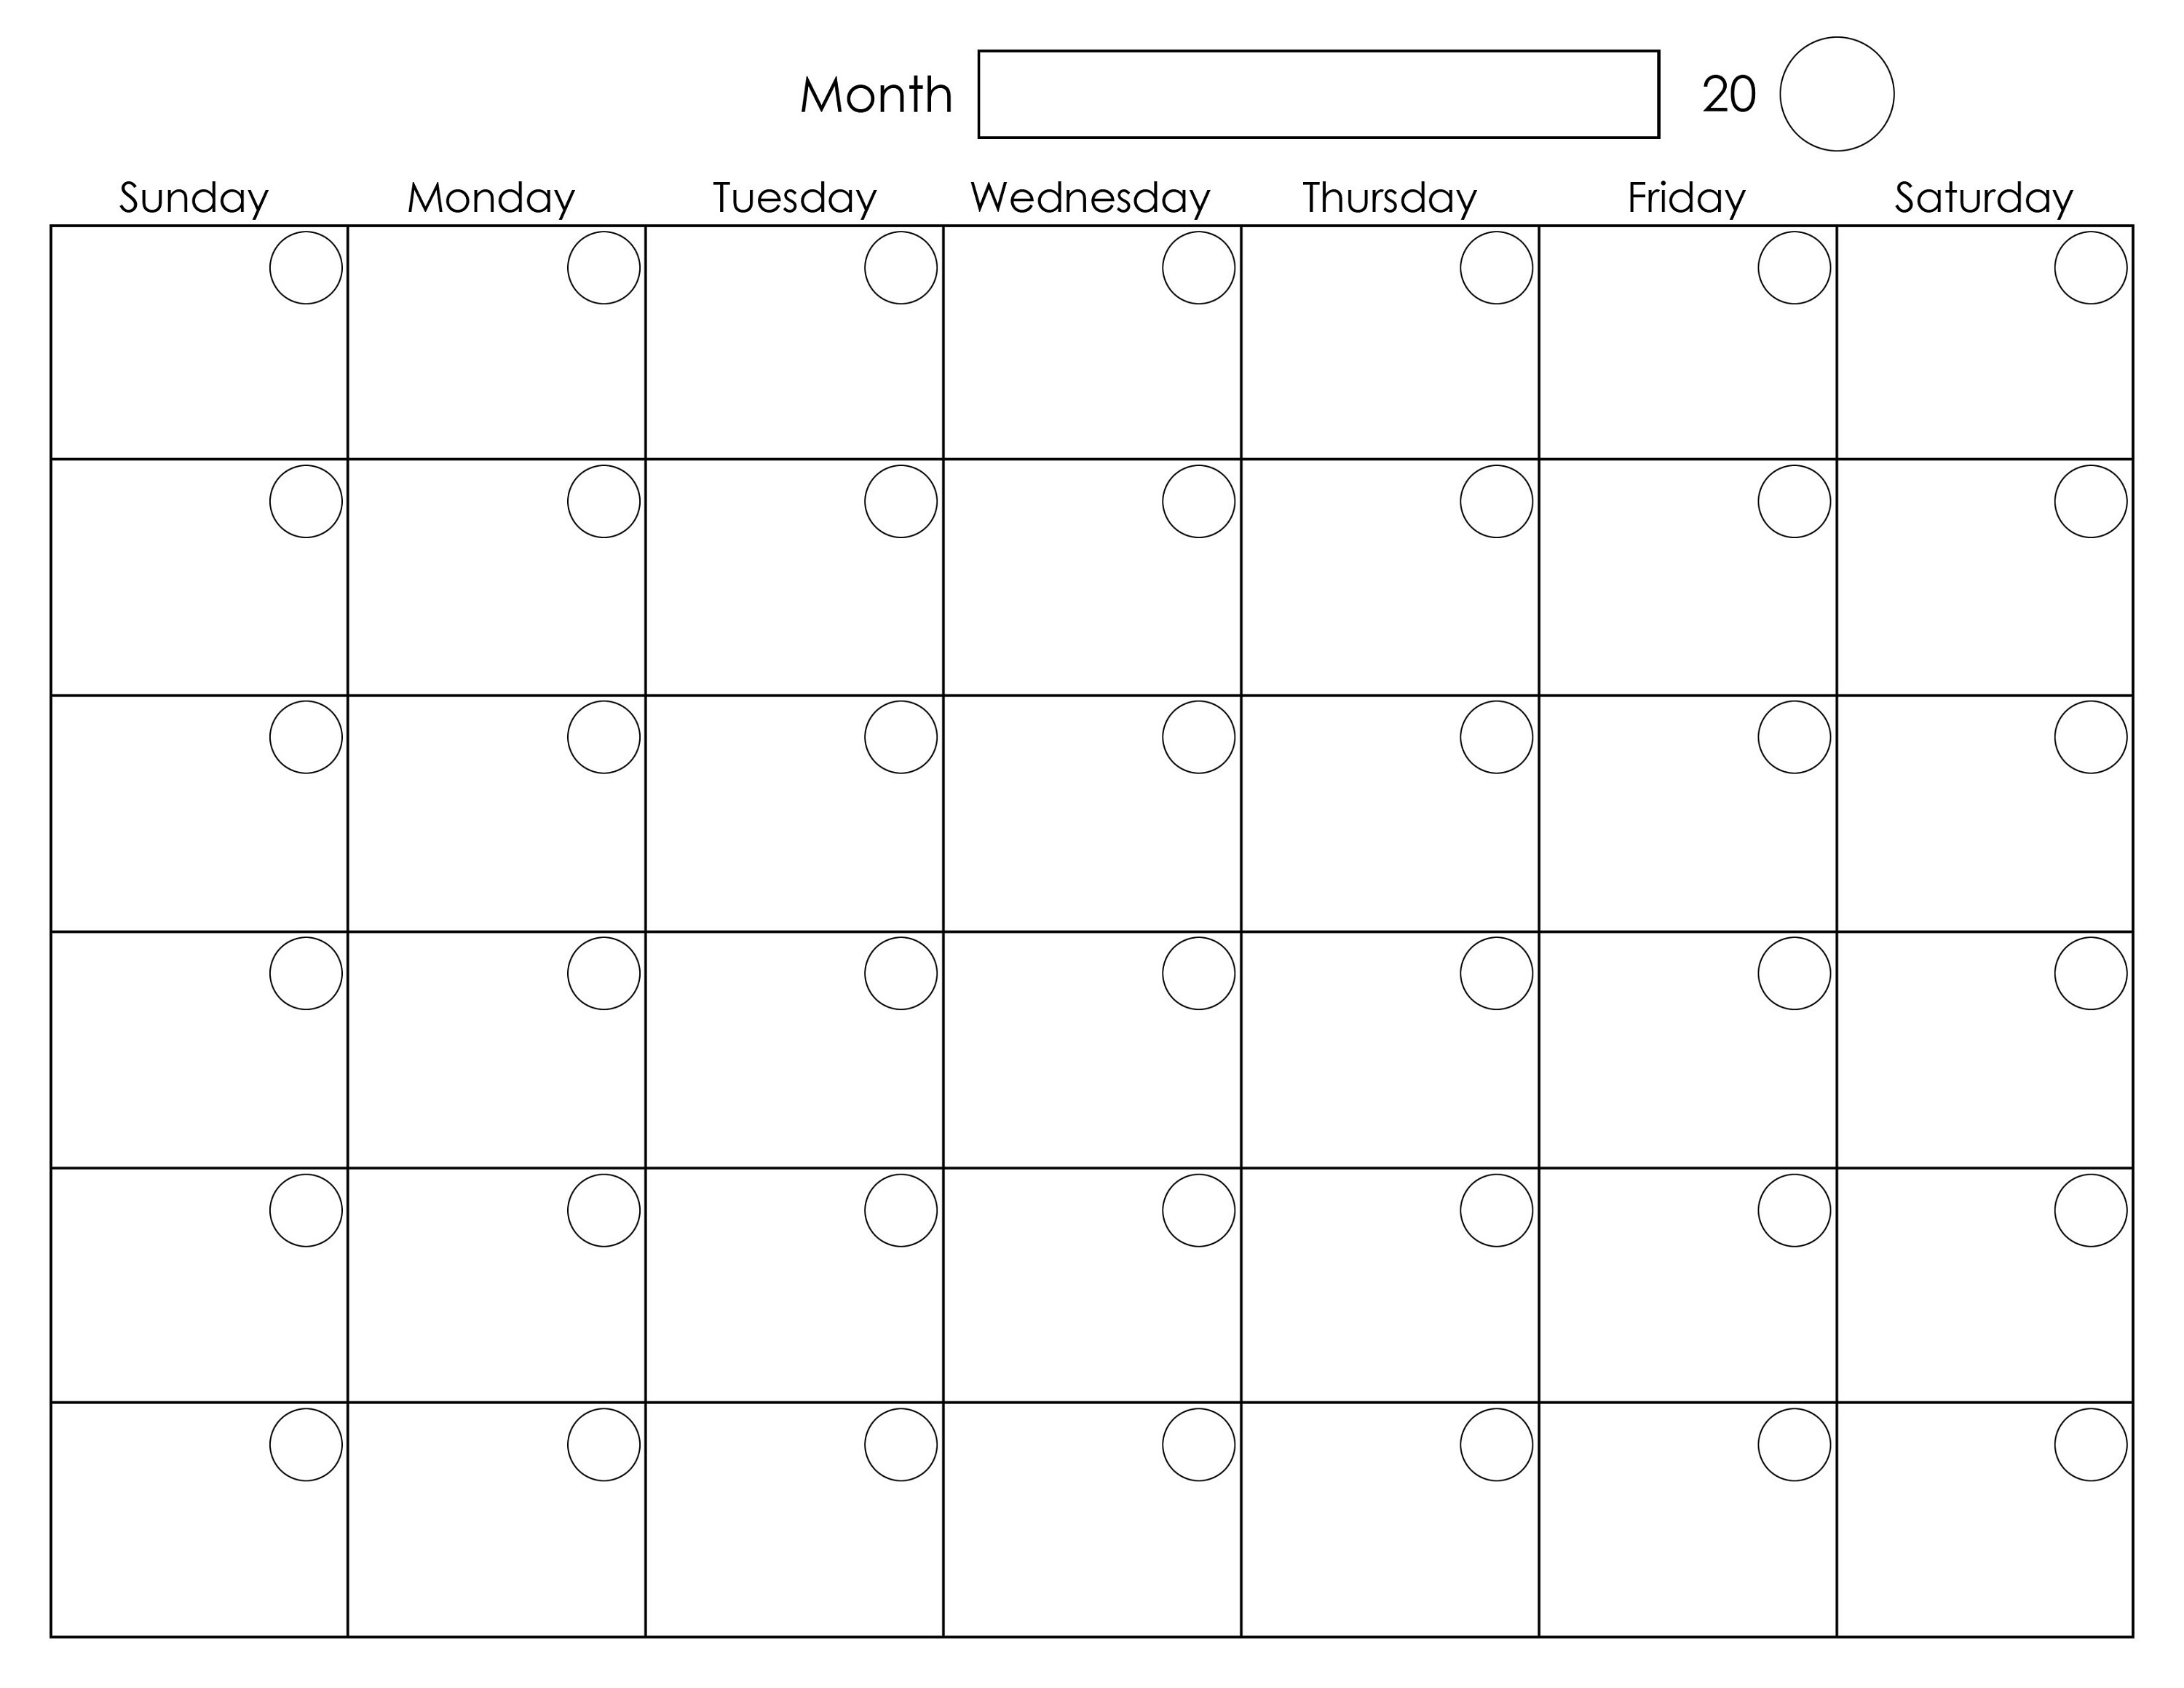 Calendar Monthly Free : Printable blank monthly calendar activity shelter